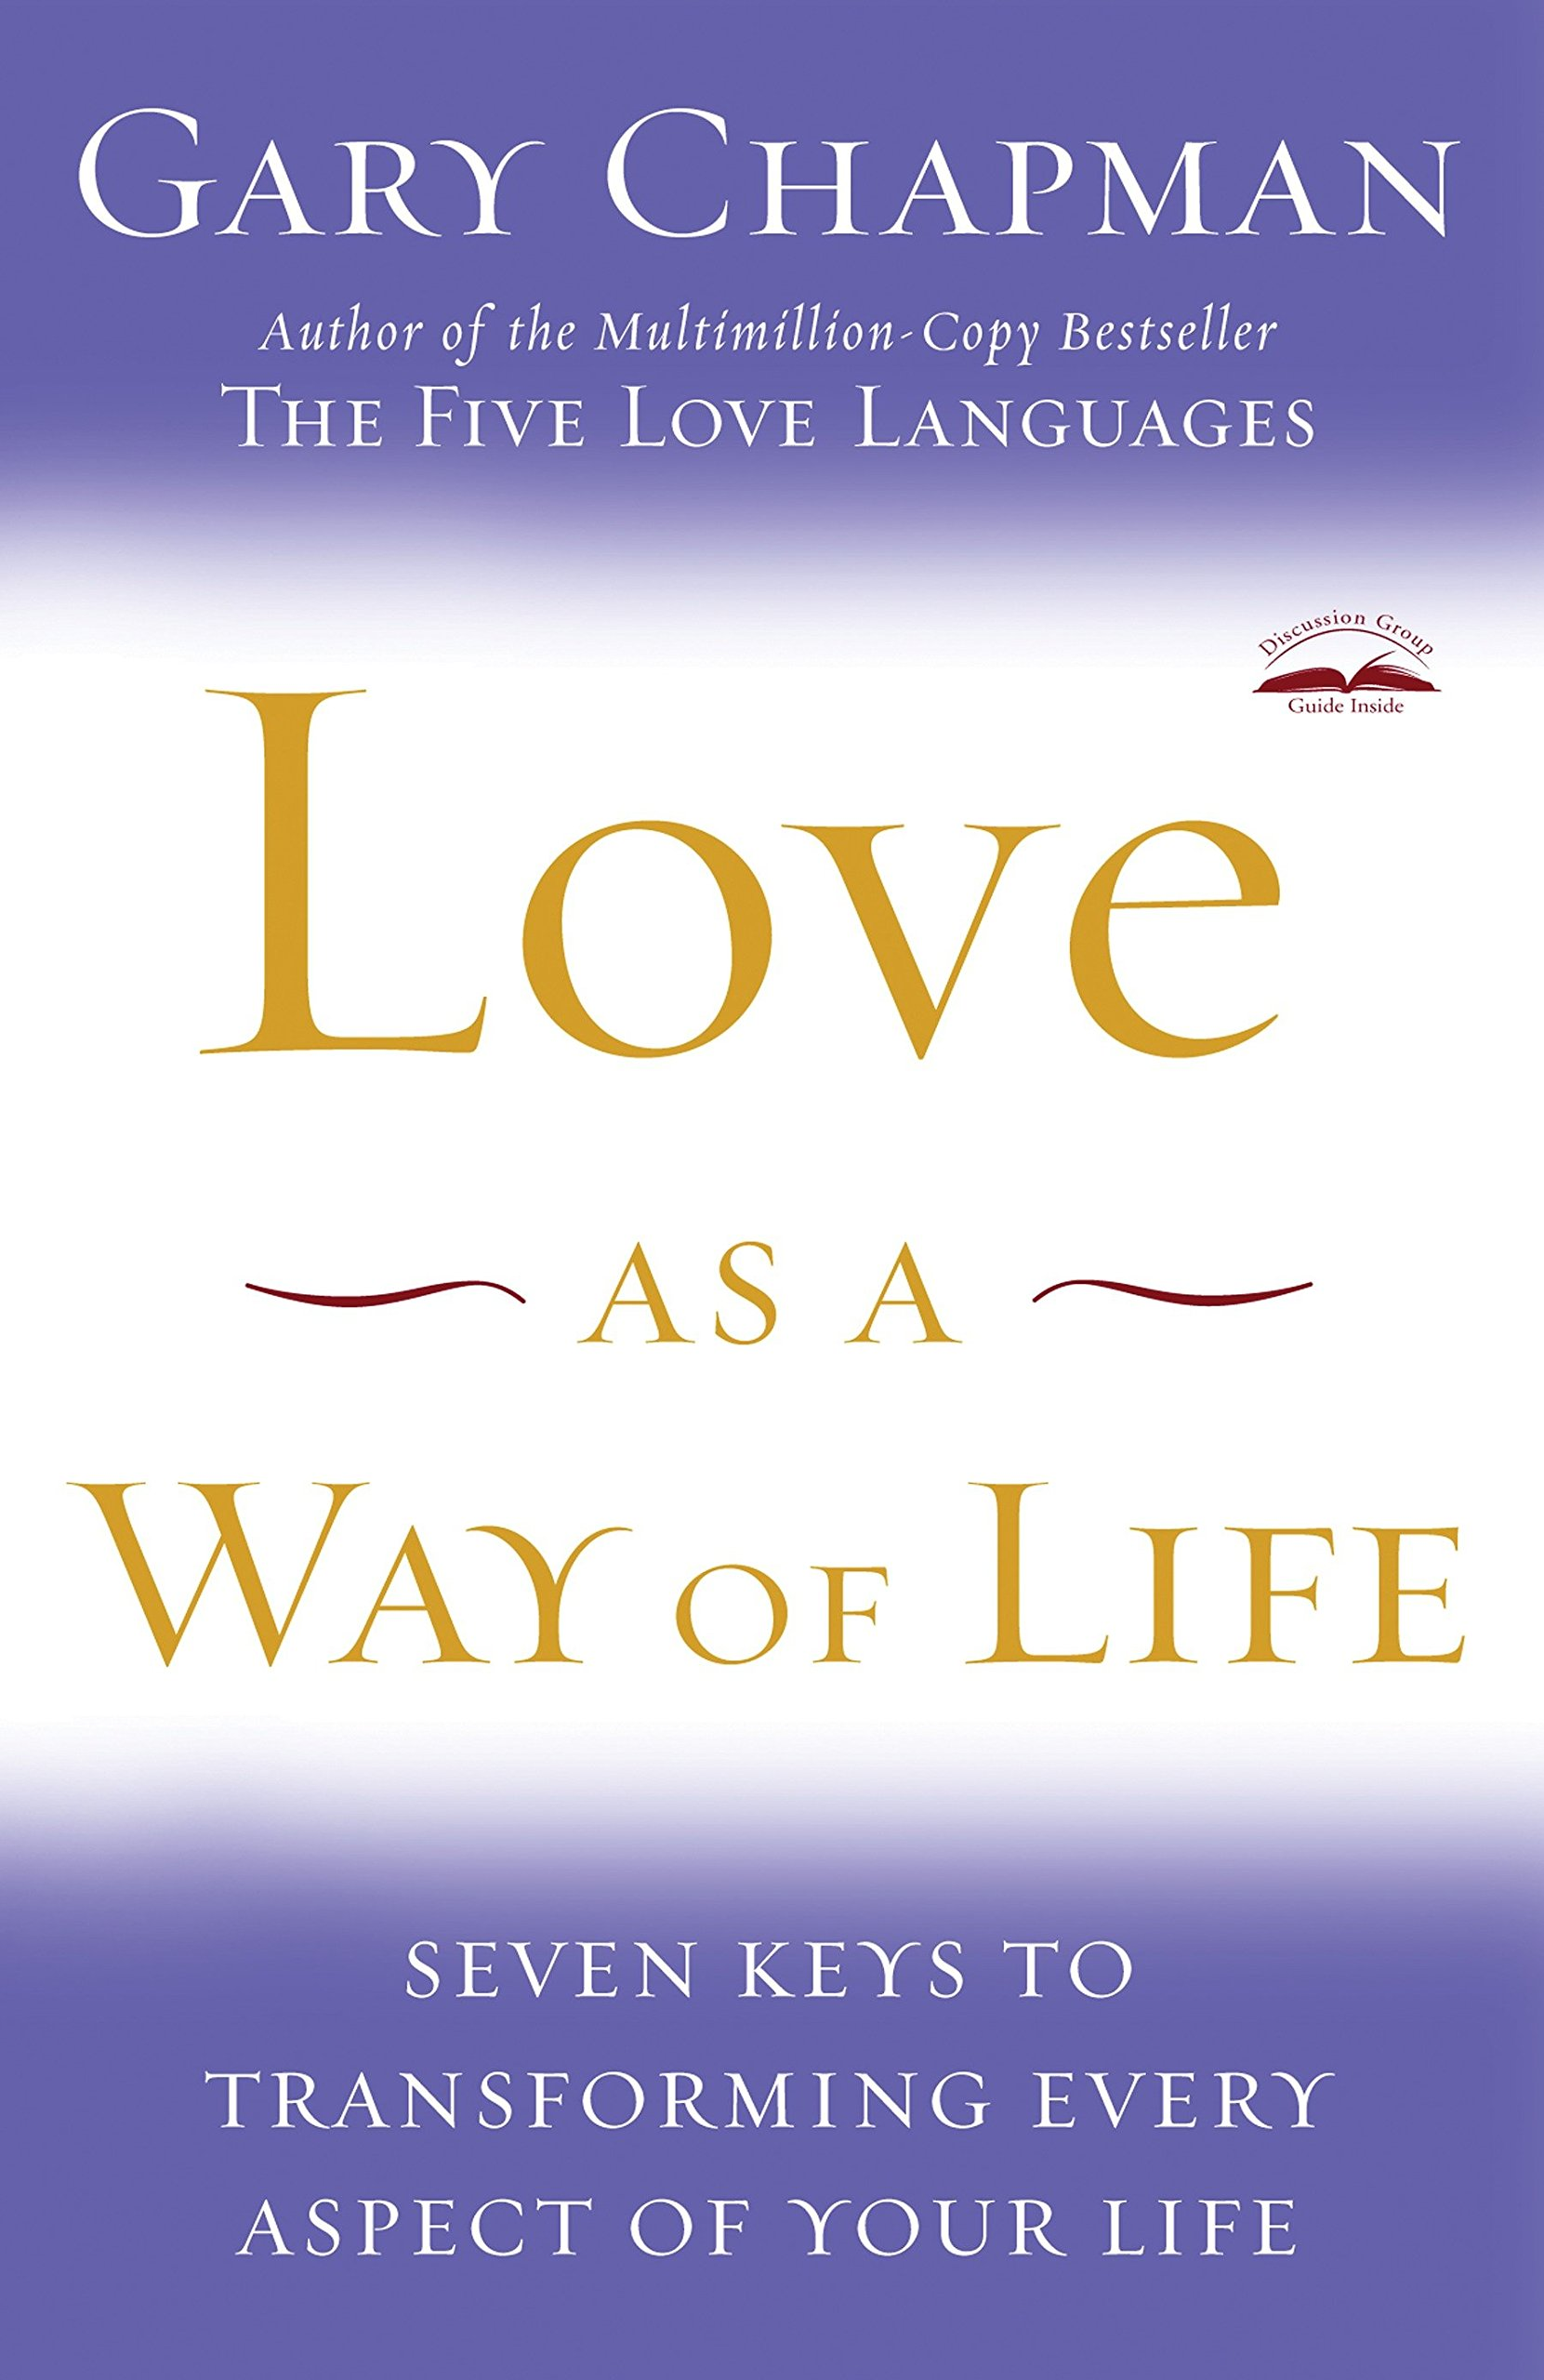 Love as a Way of Life: Seven Keys to Transforming Every Aspect of Your Life:  Gary Chapman: 0880801261318: Amazon.com: Books